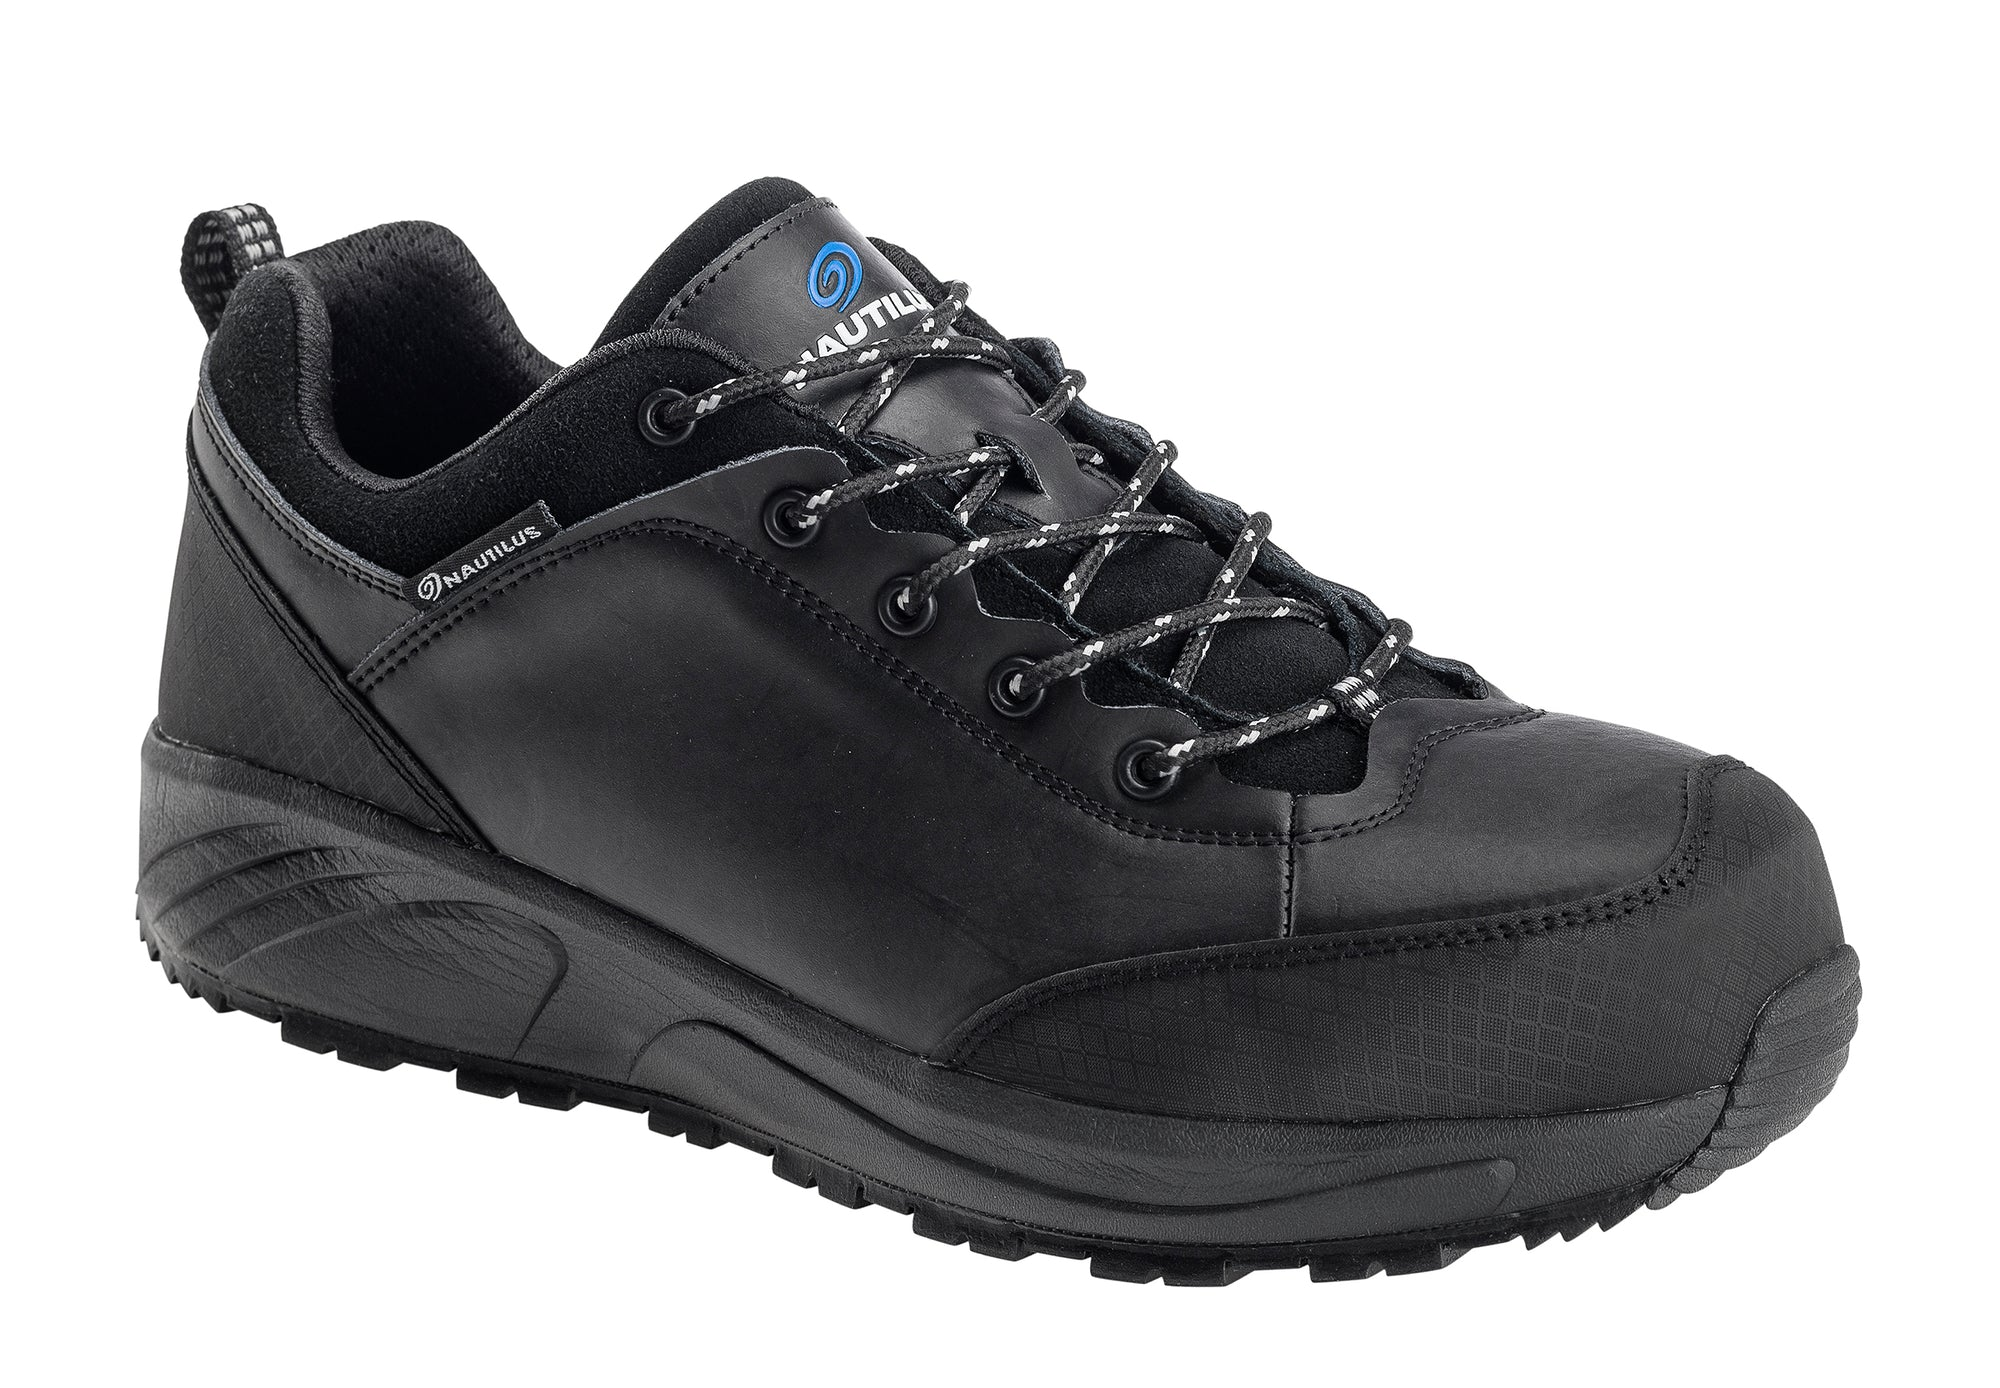 Surge Black Composite Toe EH Athletic Work Shoe